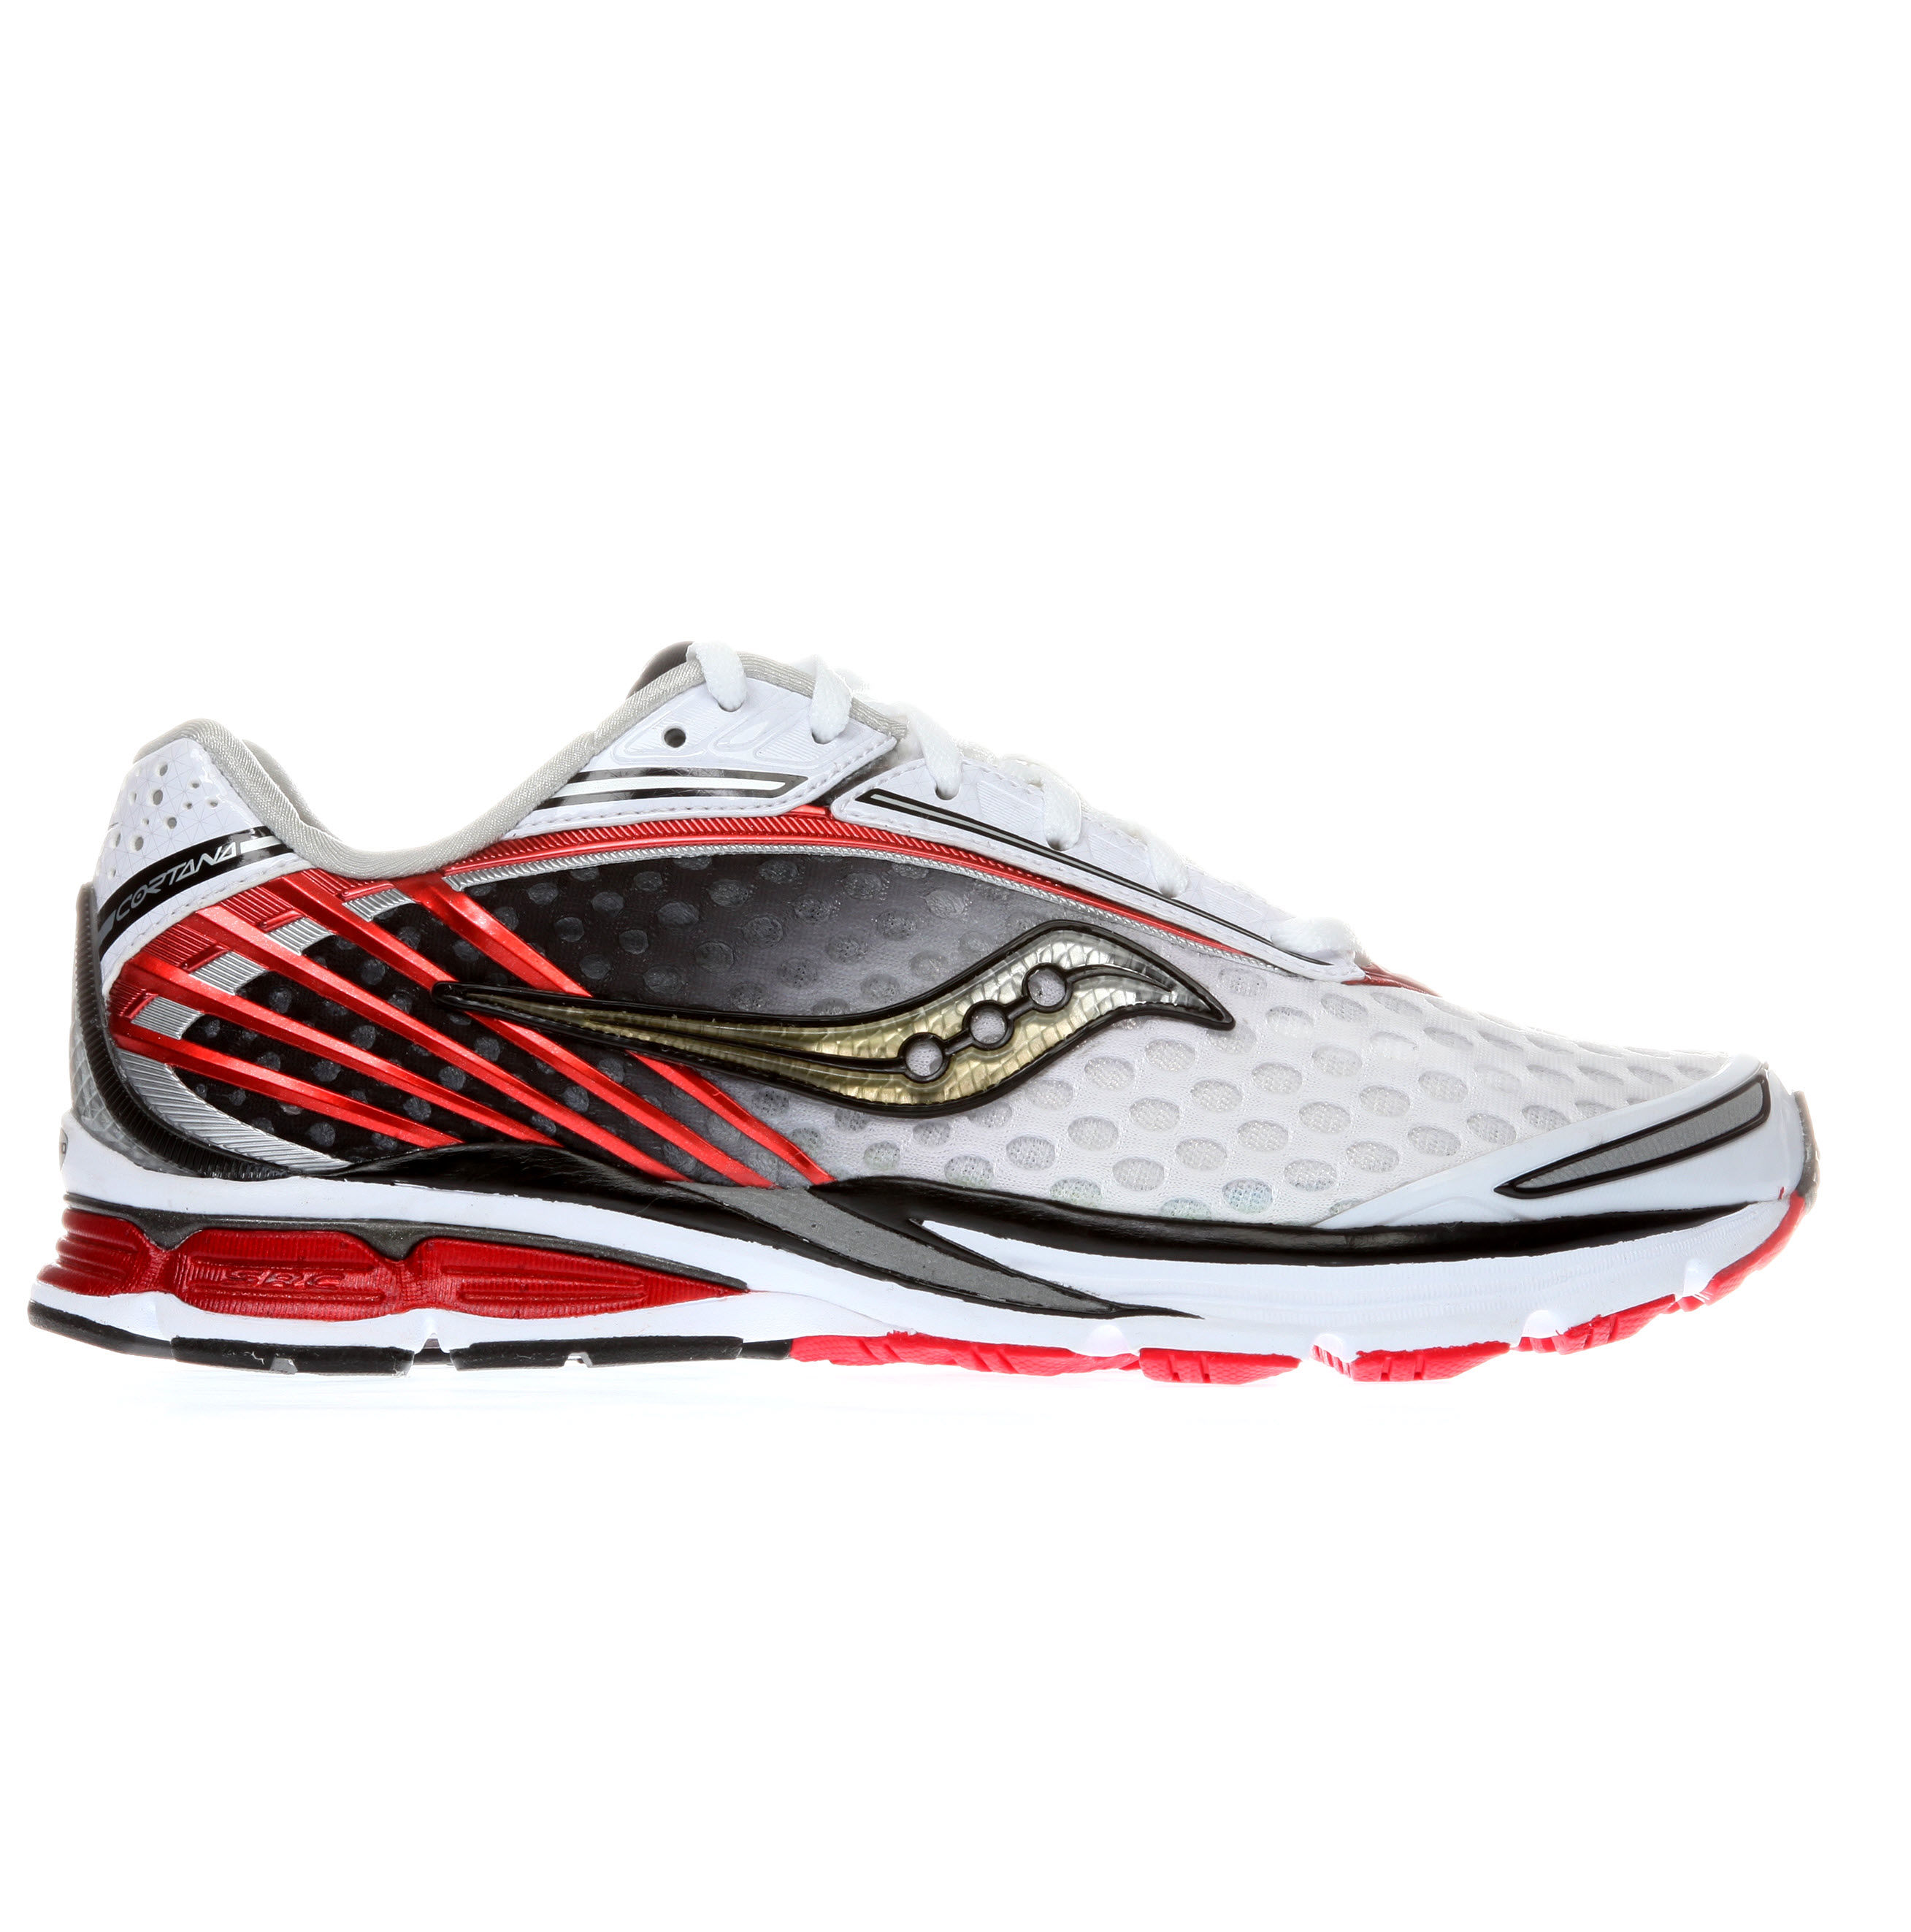 saucony lady powergrid cortana running shoes review